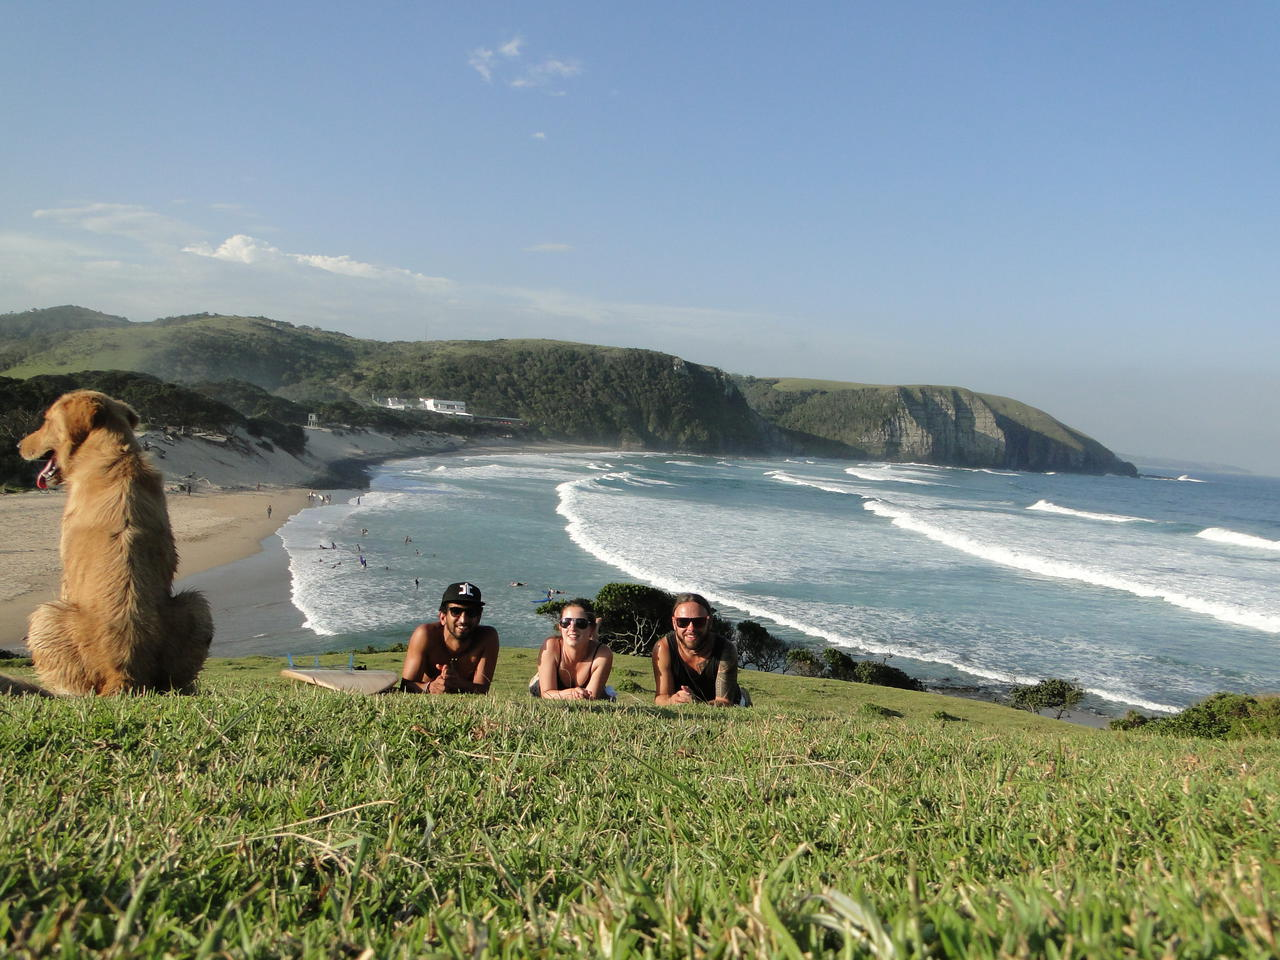 s252dafrikareisebericht quotcoffee bay � never too far awayquot